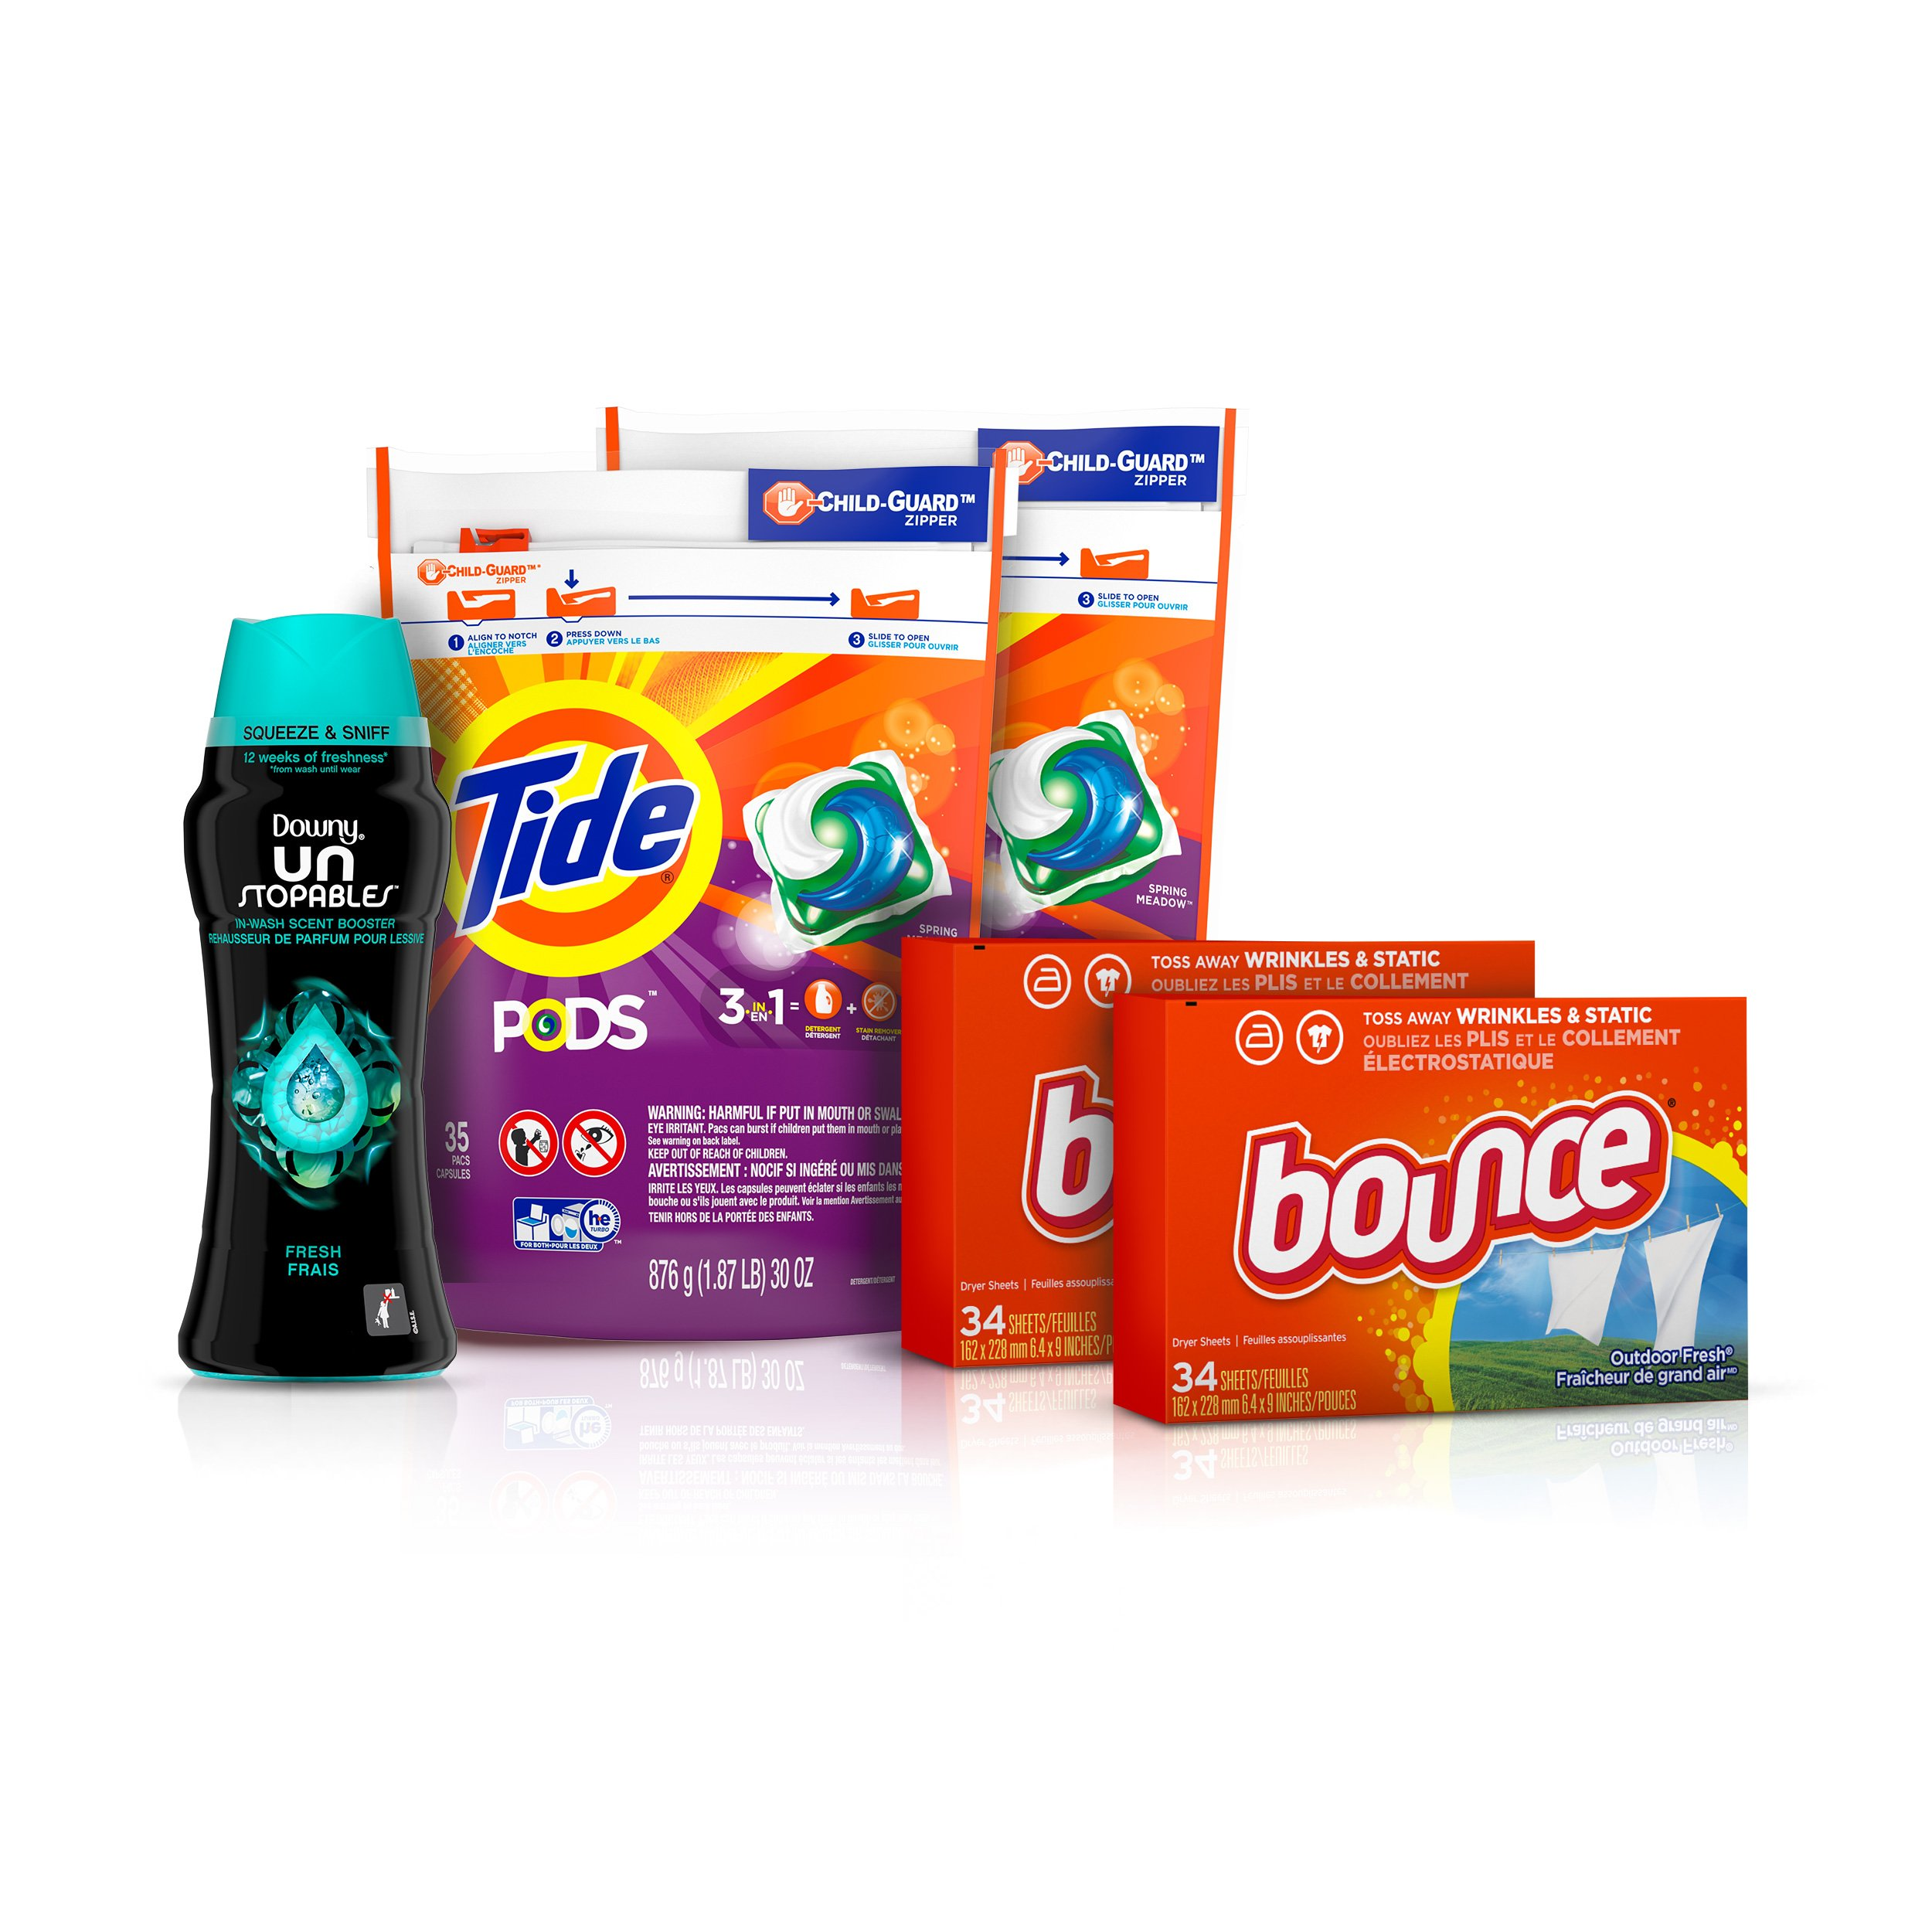 Tide Pods Laundry Detergent Pacs (2x35ct), Downy Unstopable Scent Beads (14.8 oz) and Bounce Dryer Sheets (2x34ct), Better Together Bundle by Tide